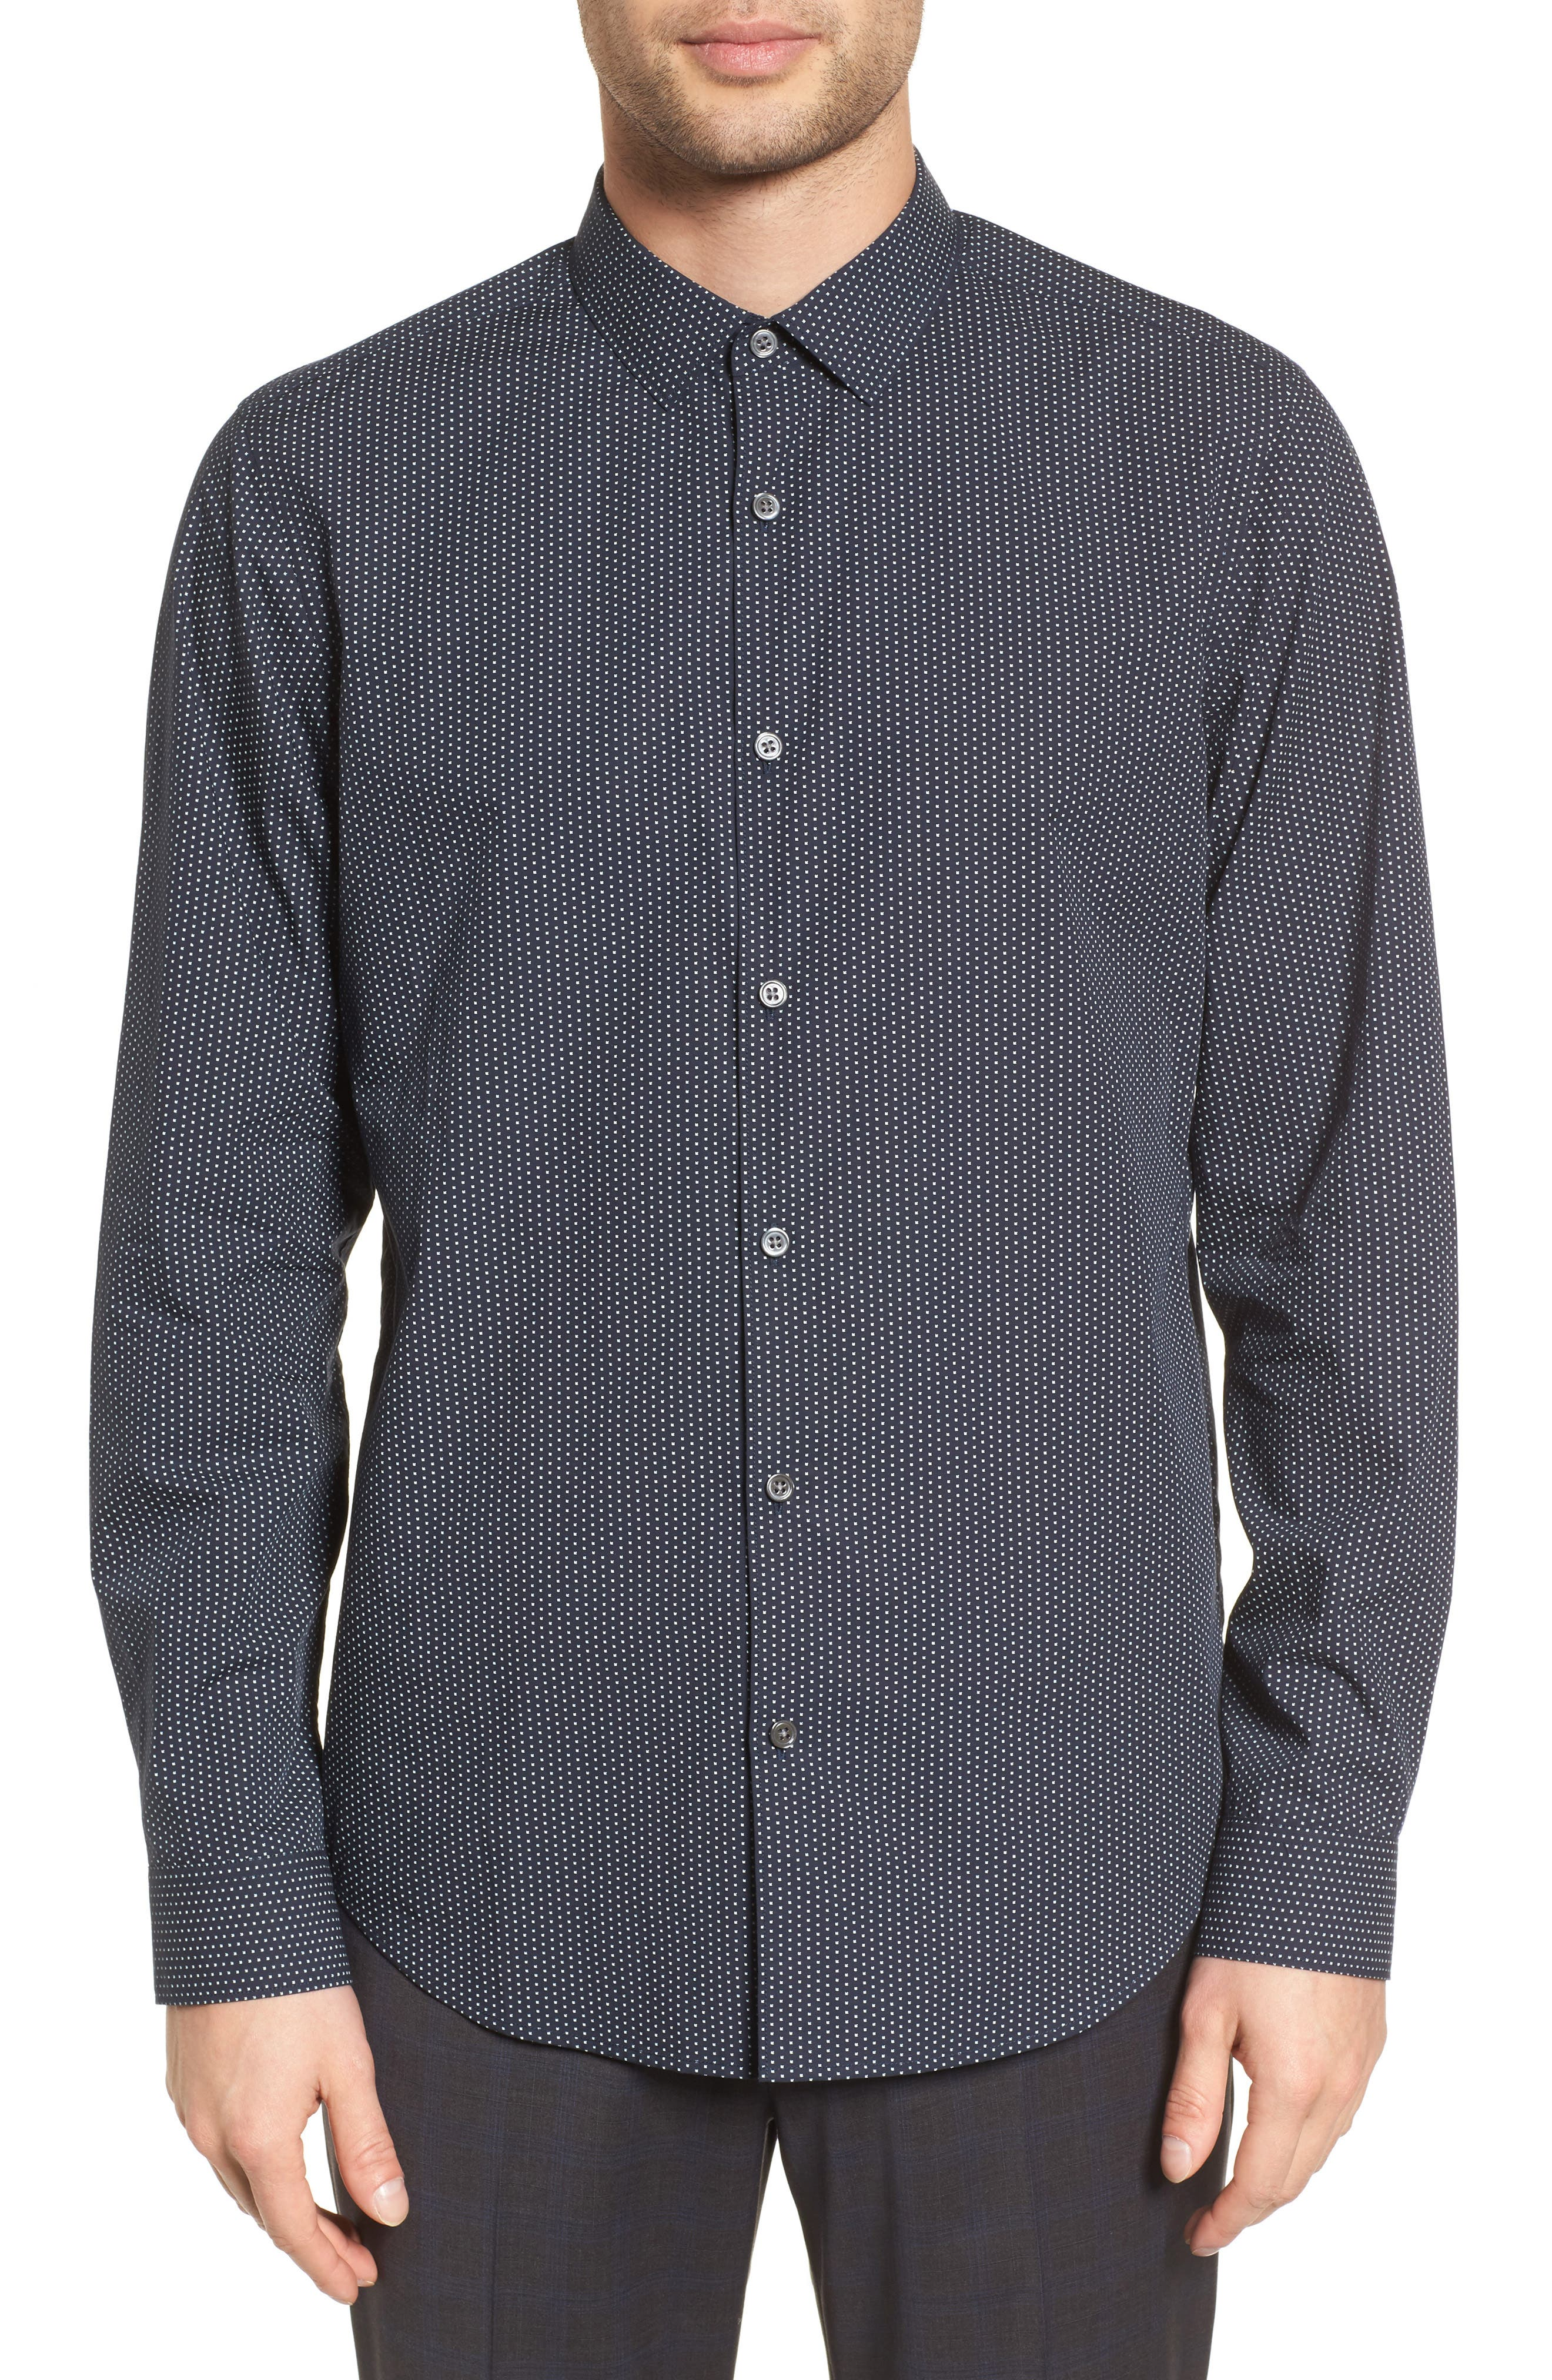 Murray Slim Fit Sport Shirt,                         Main,                         color, Eclipse